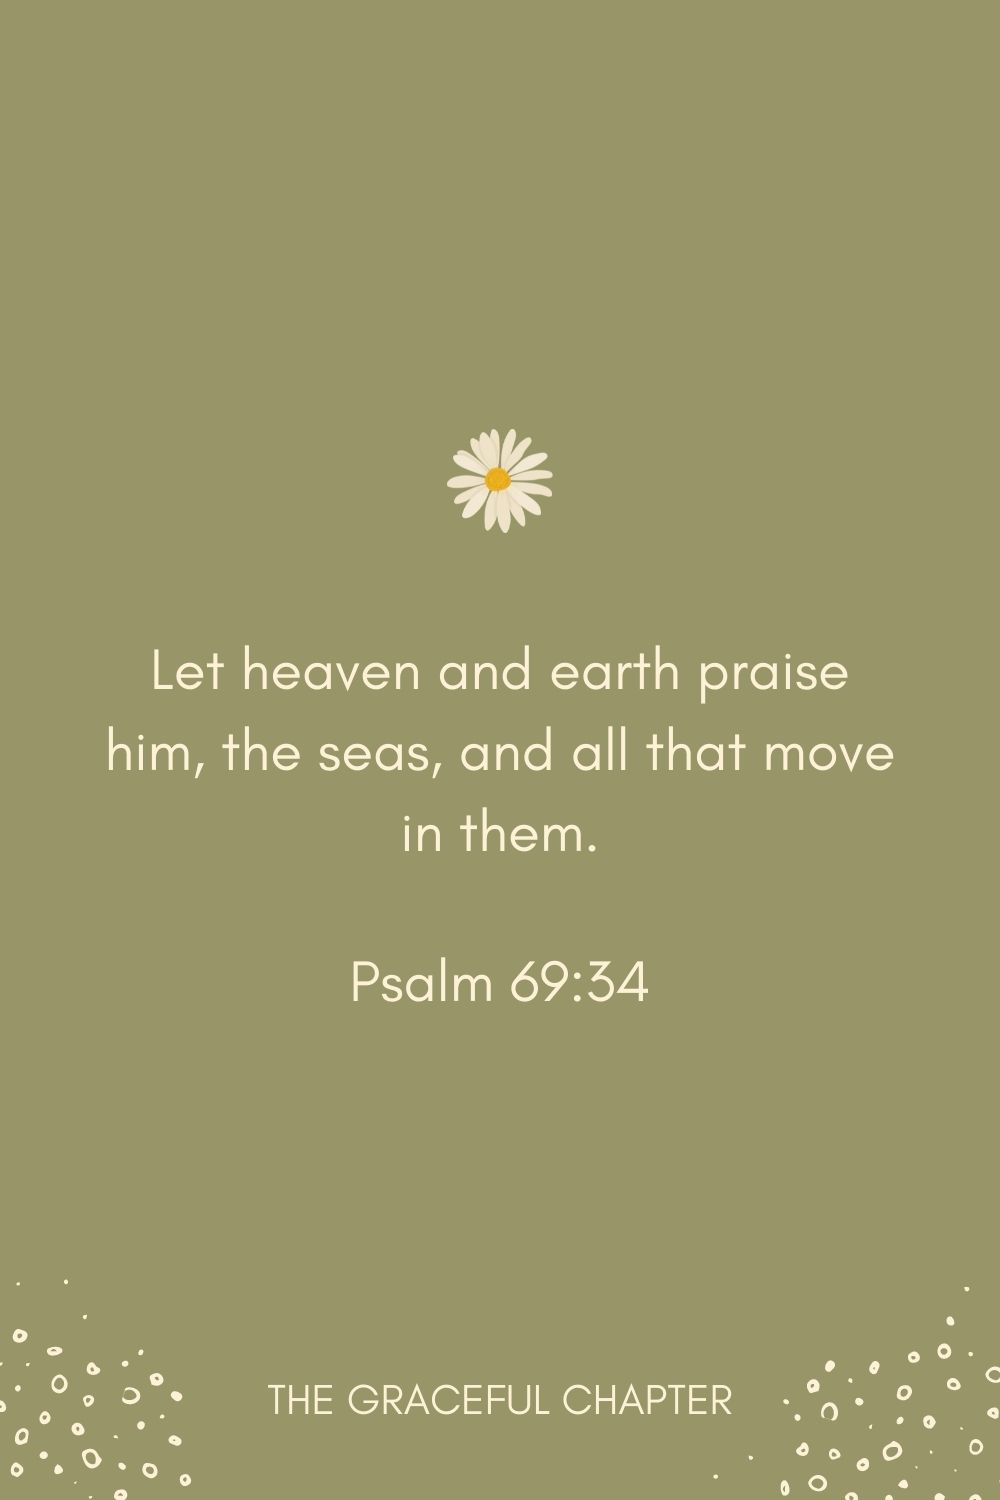 Let heaven and earth praise him, the seas, and all that move in them. Psalm 69:34